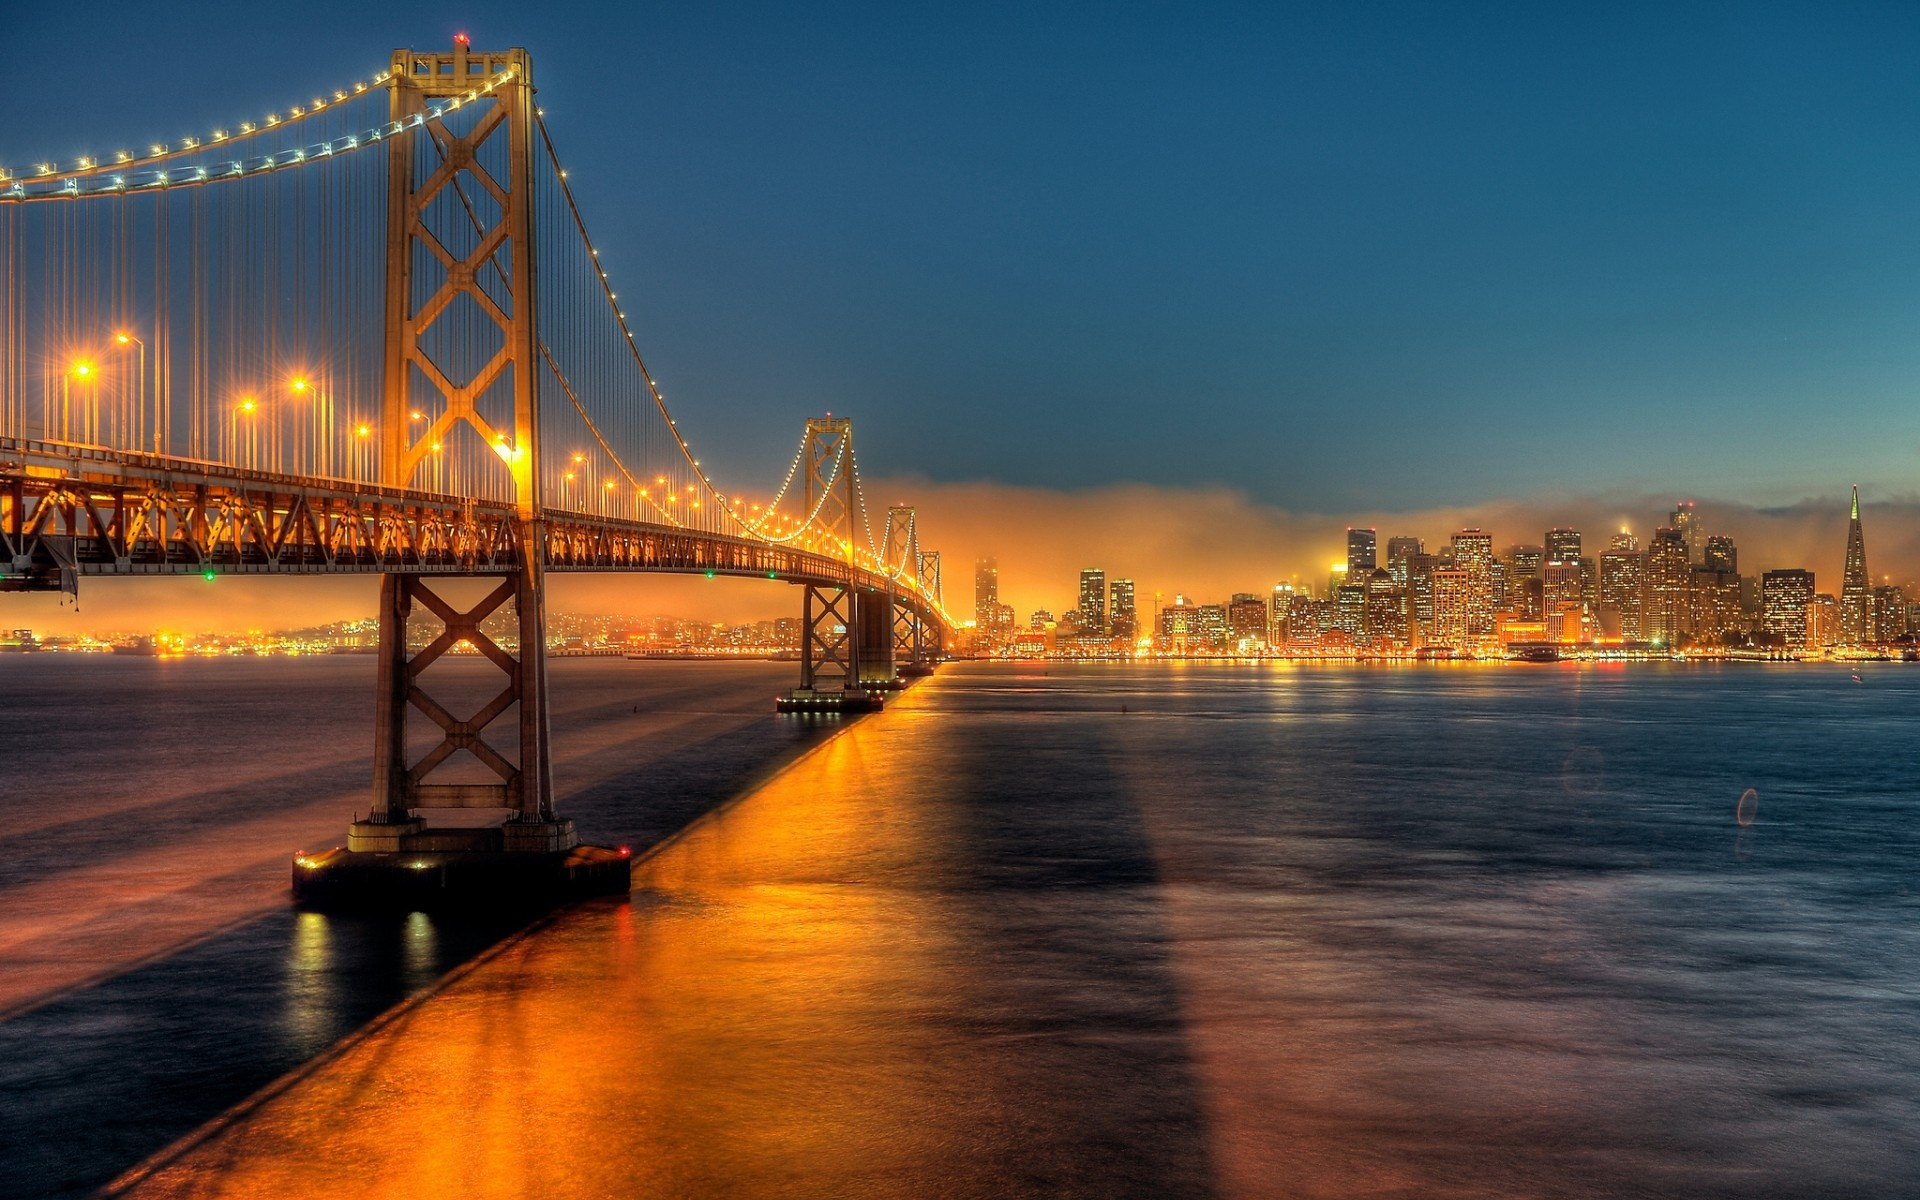 Bay Bridge, city, night, lights, bridge desktop wallpaper » World 1271